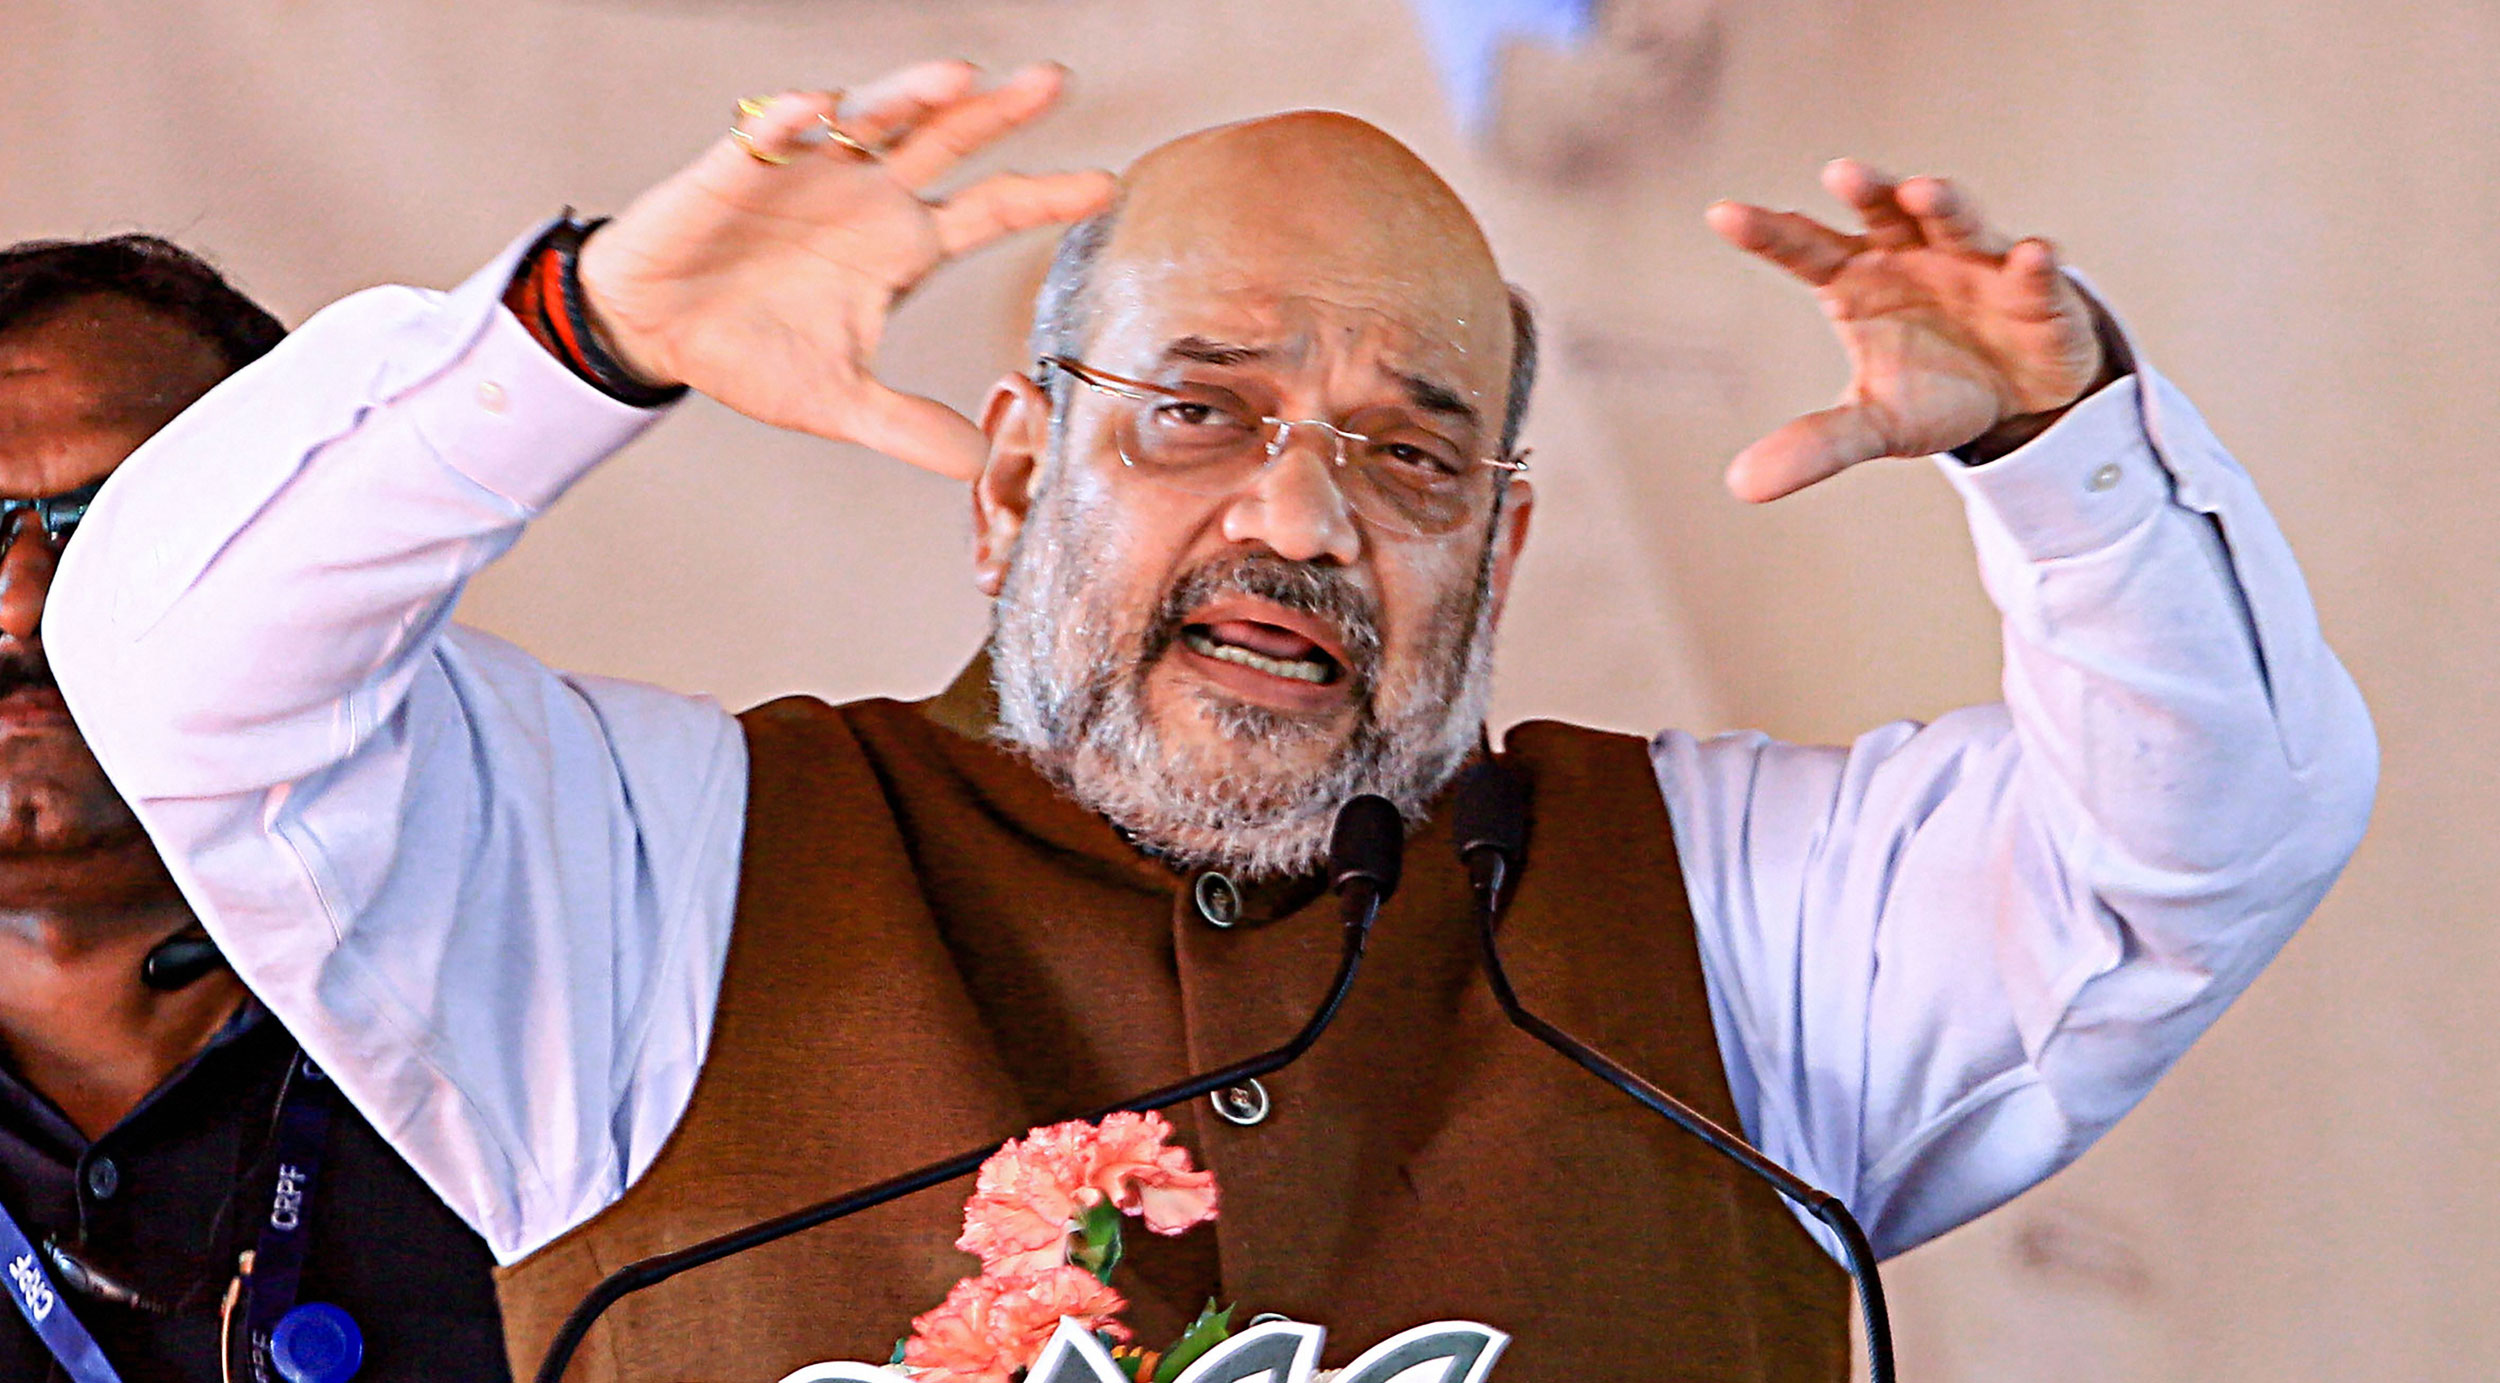 """Amit Shah had in October skipped the Indo-Tibetan Border Police's Raising Day parade too, at a time an avowedly """"nationalistic"""" government's treatment of the paramilitary forces was provoking comment. The previous month, the government had frozen CRPF troops' monthly ration allowance."""